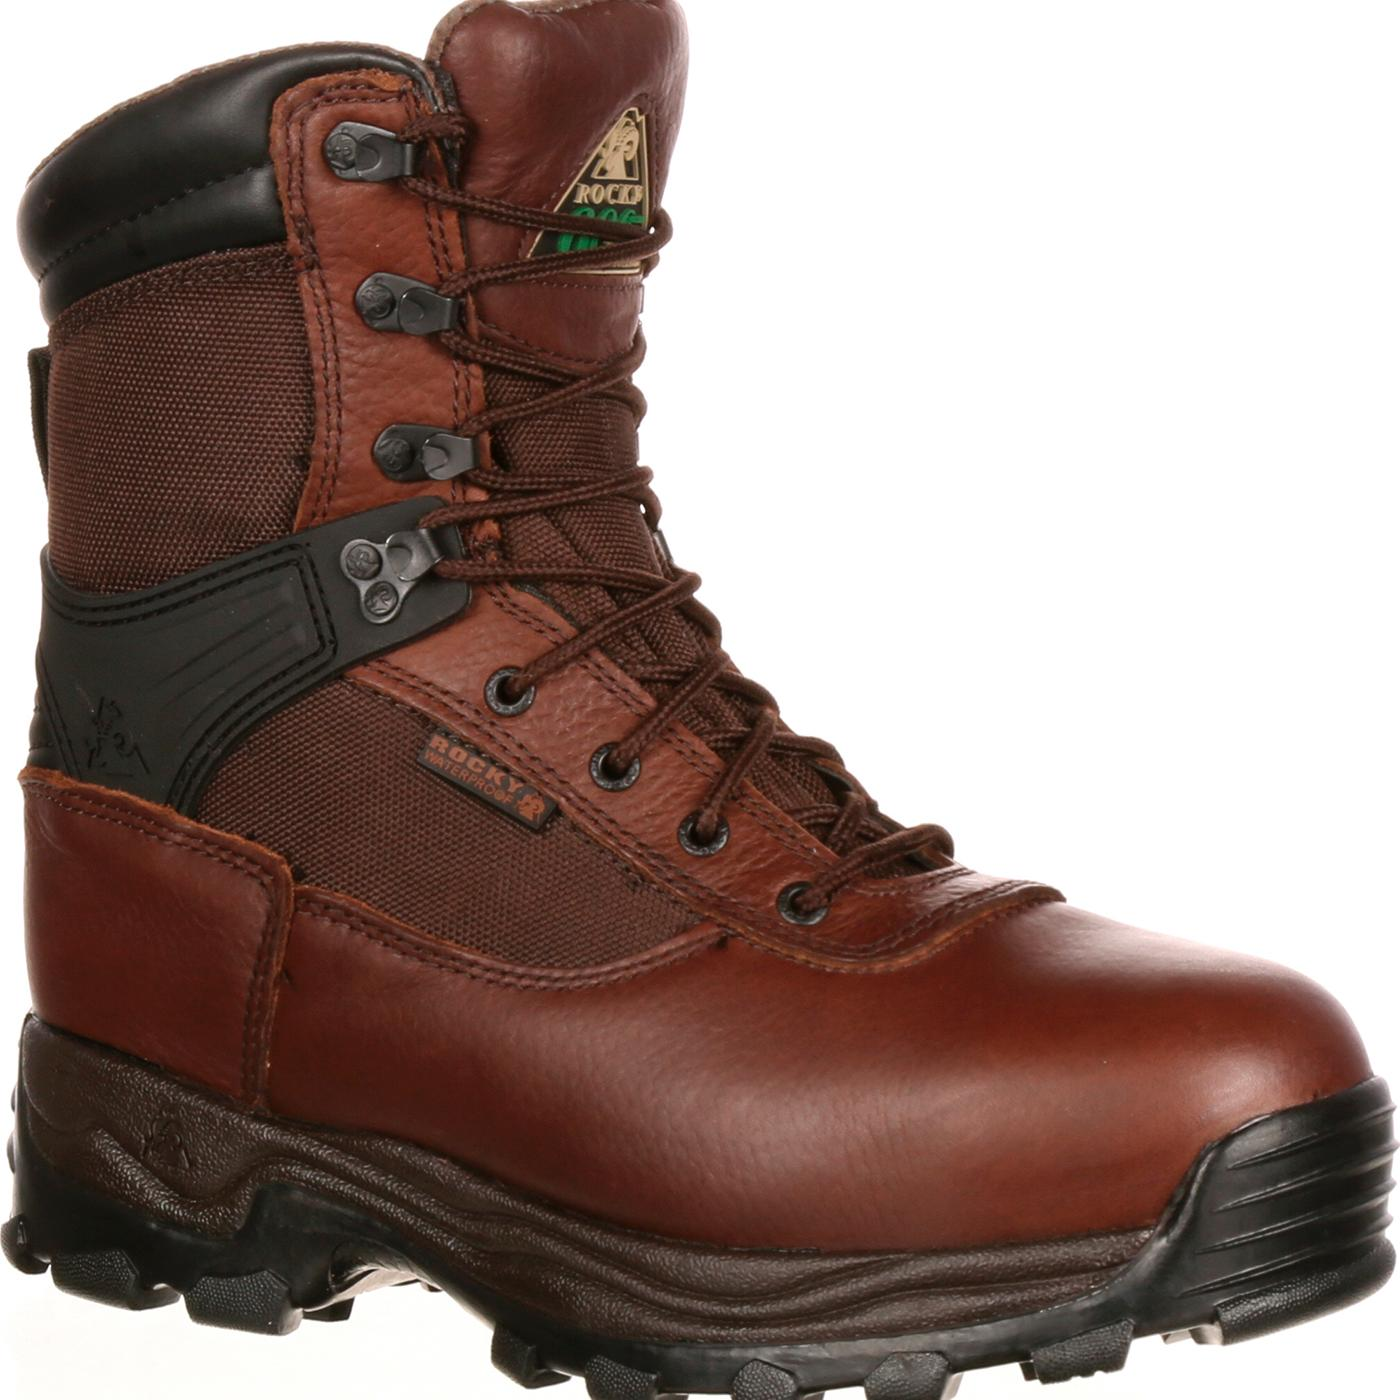 Rocky Sport Utility Pro Steel Toe Waterproof Boot - #6486